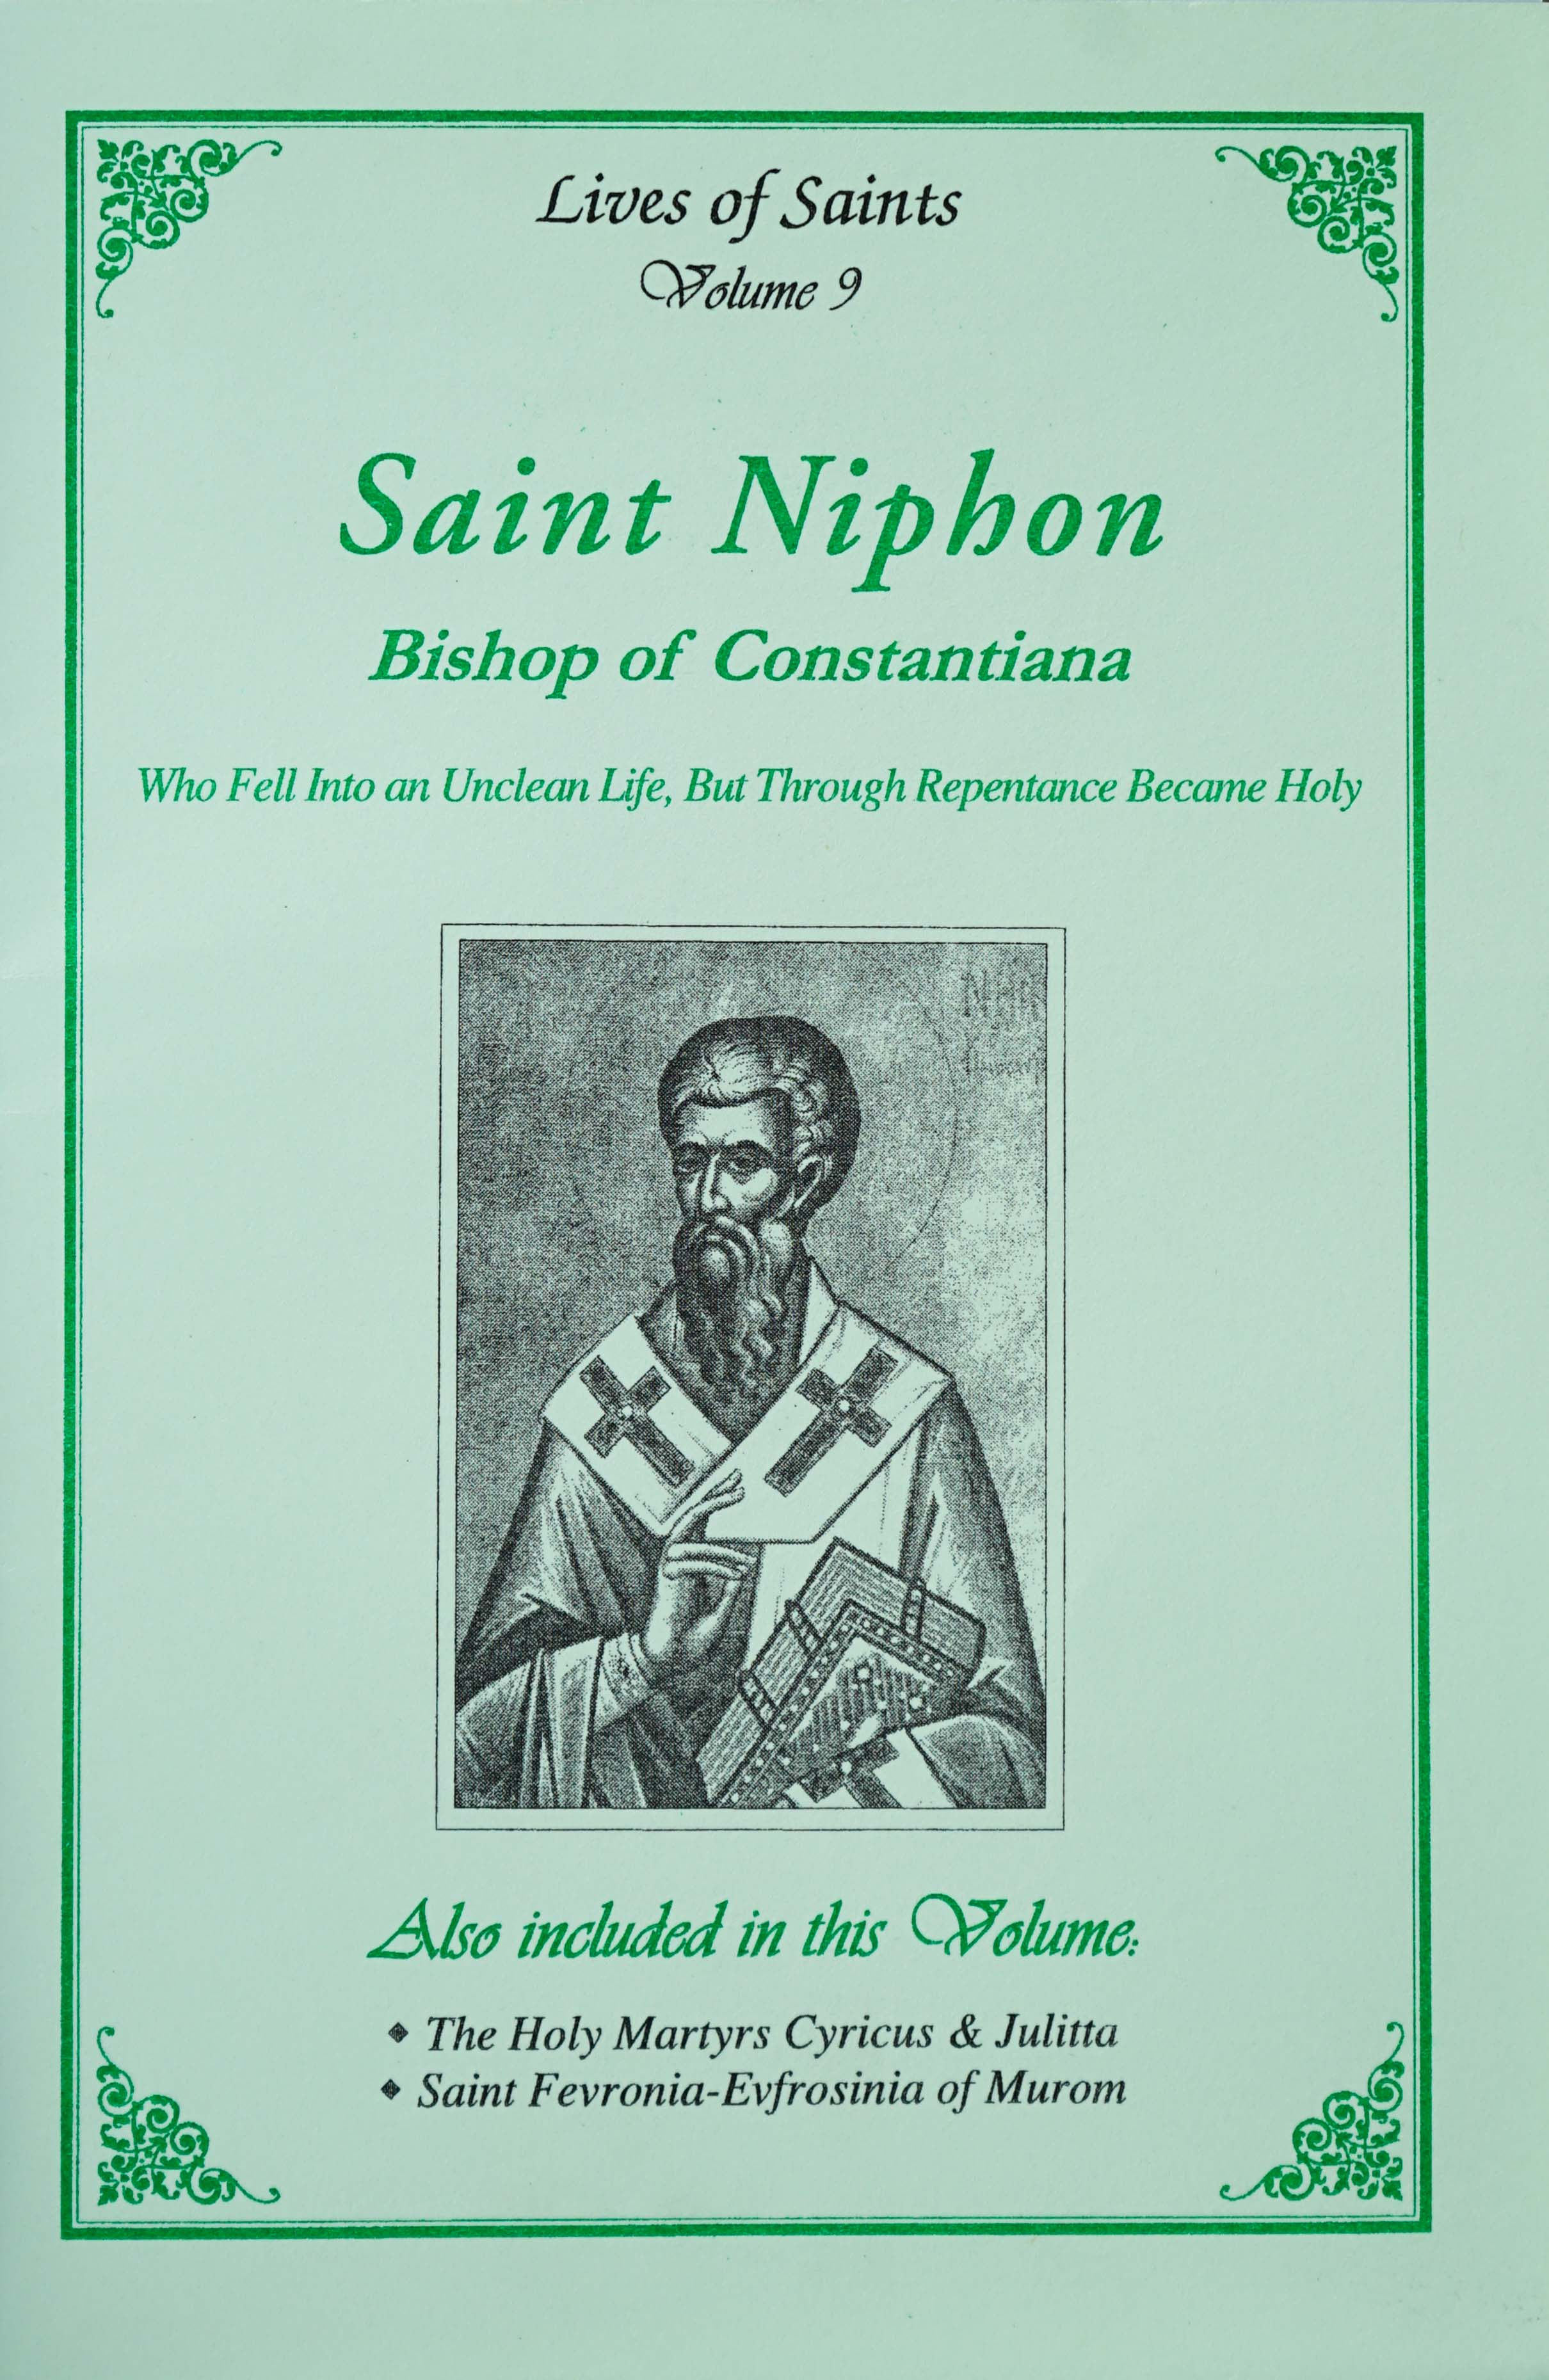 Lives of Saints Vol. 09: Saint Niphon, Bishop of Constantiana